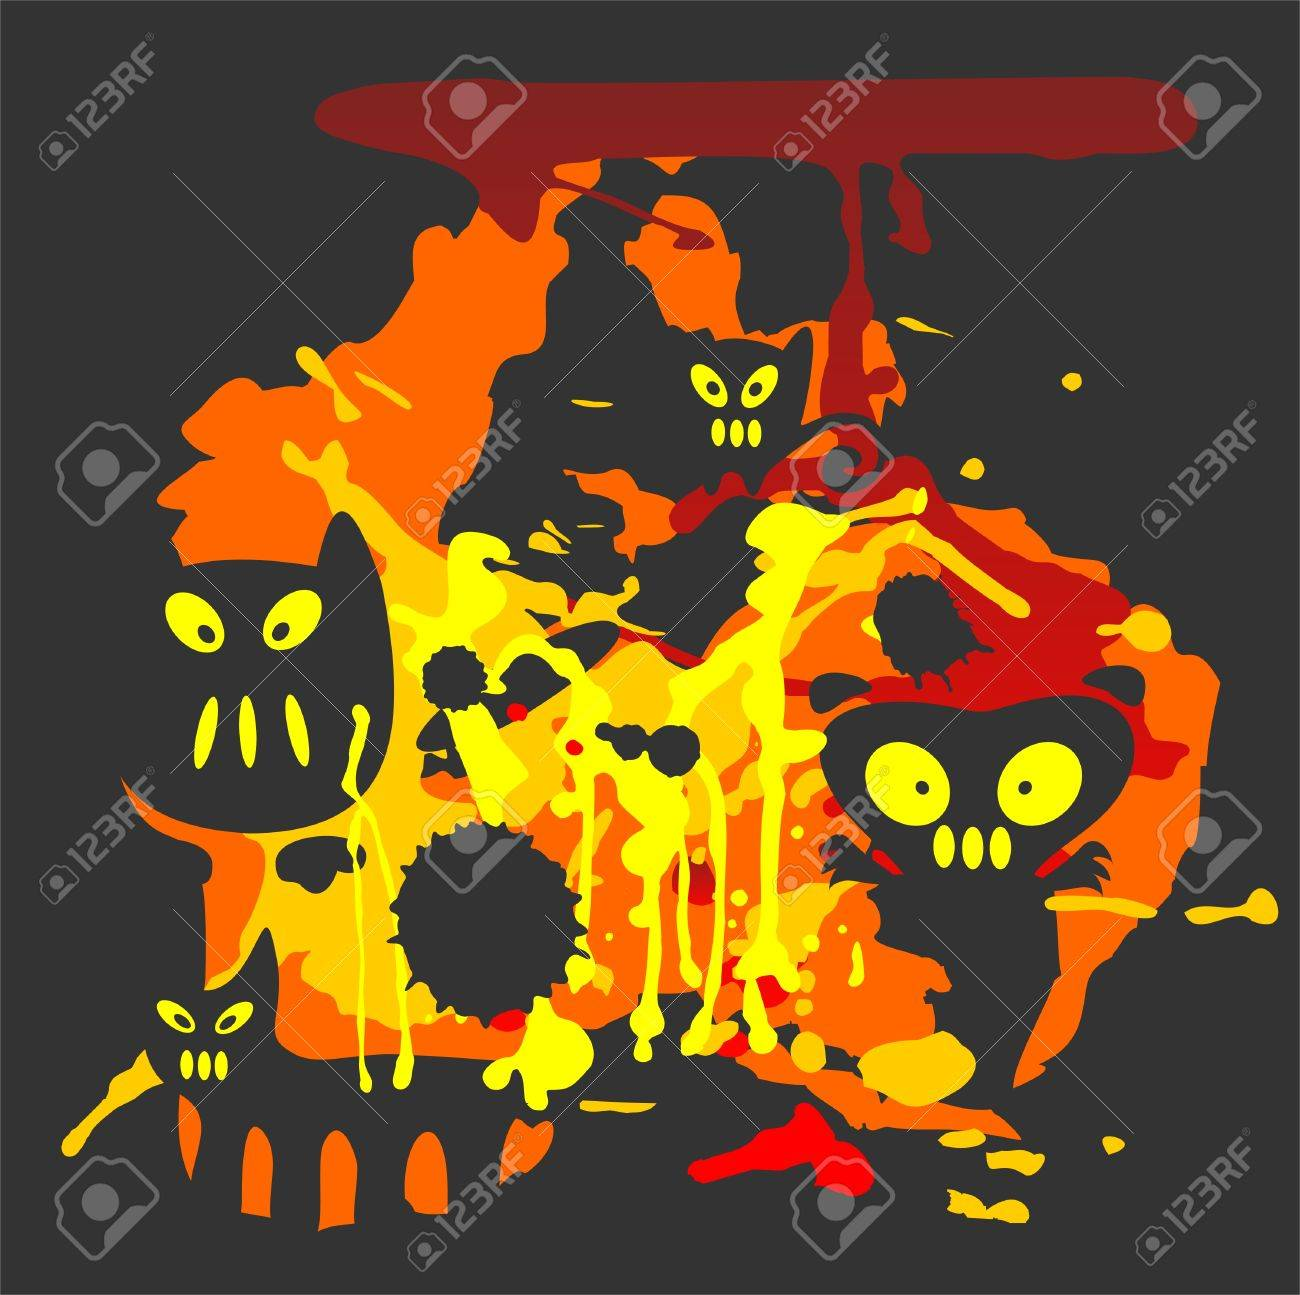 Halloween grunge black background with spots and monsters. Stock Vector - 1828383